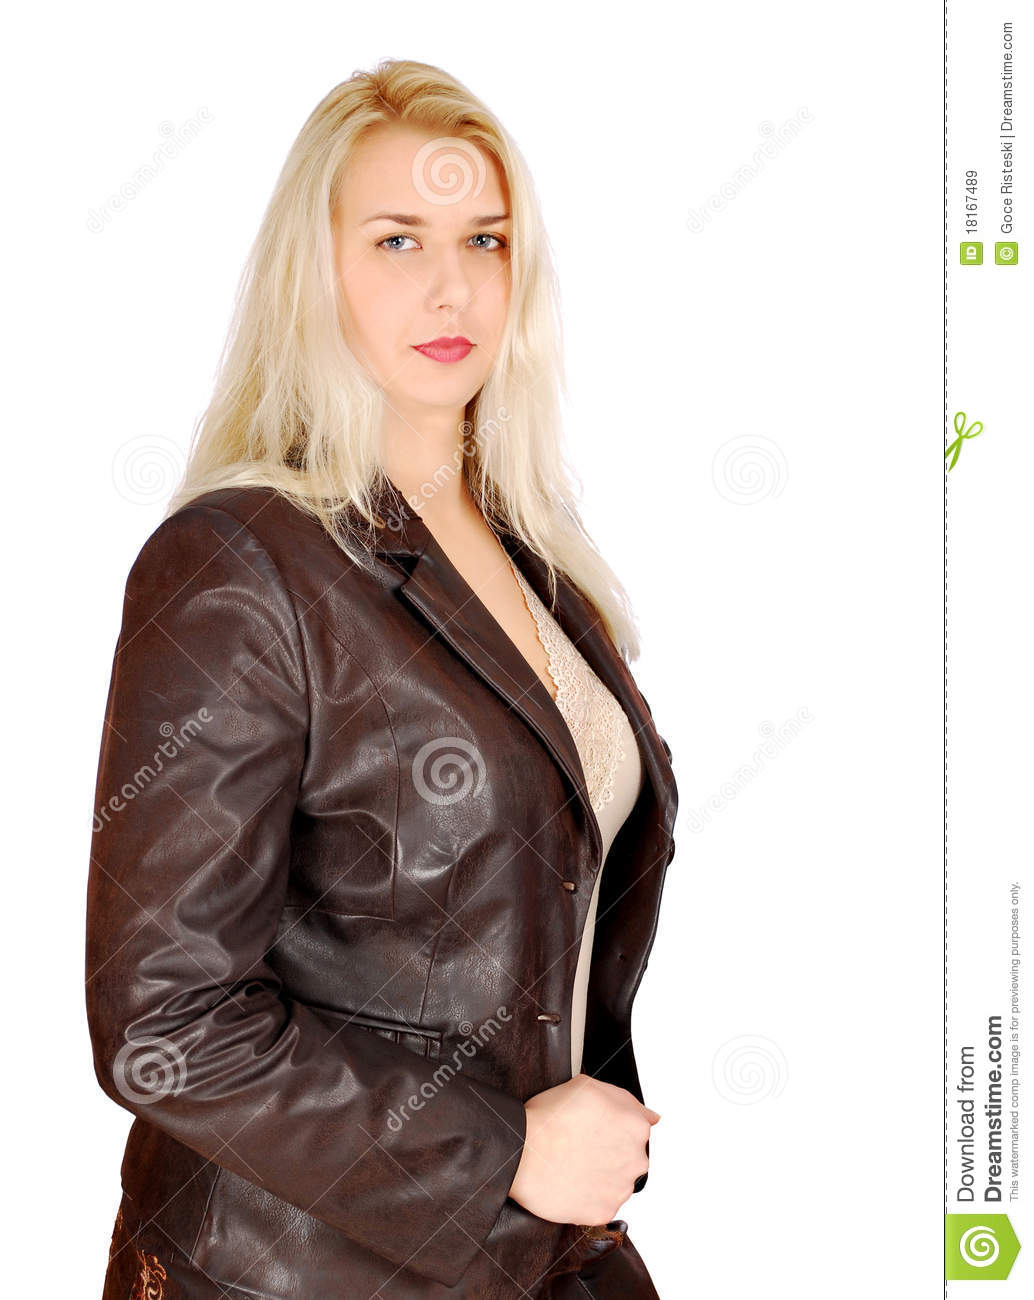 More similar stock images of blonde woman in leather jacket posing